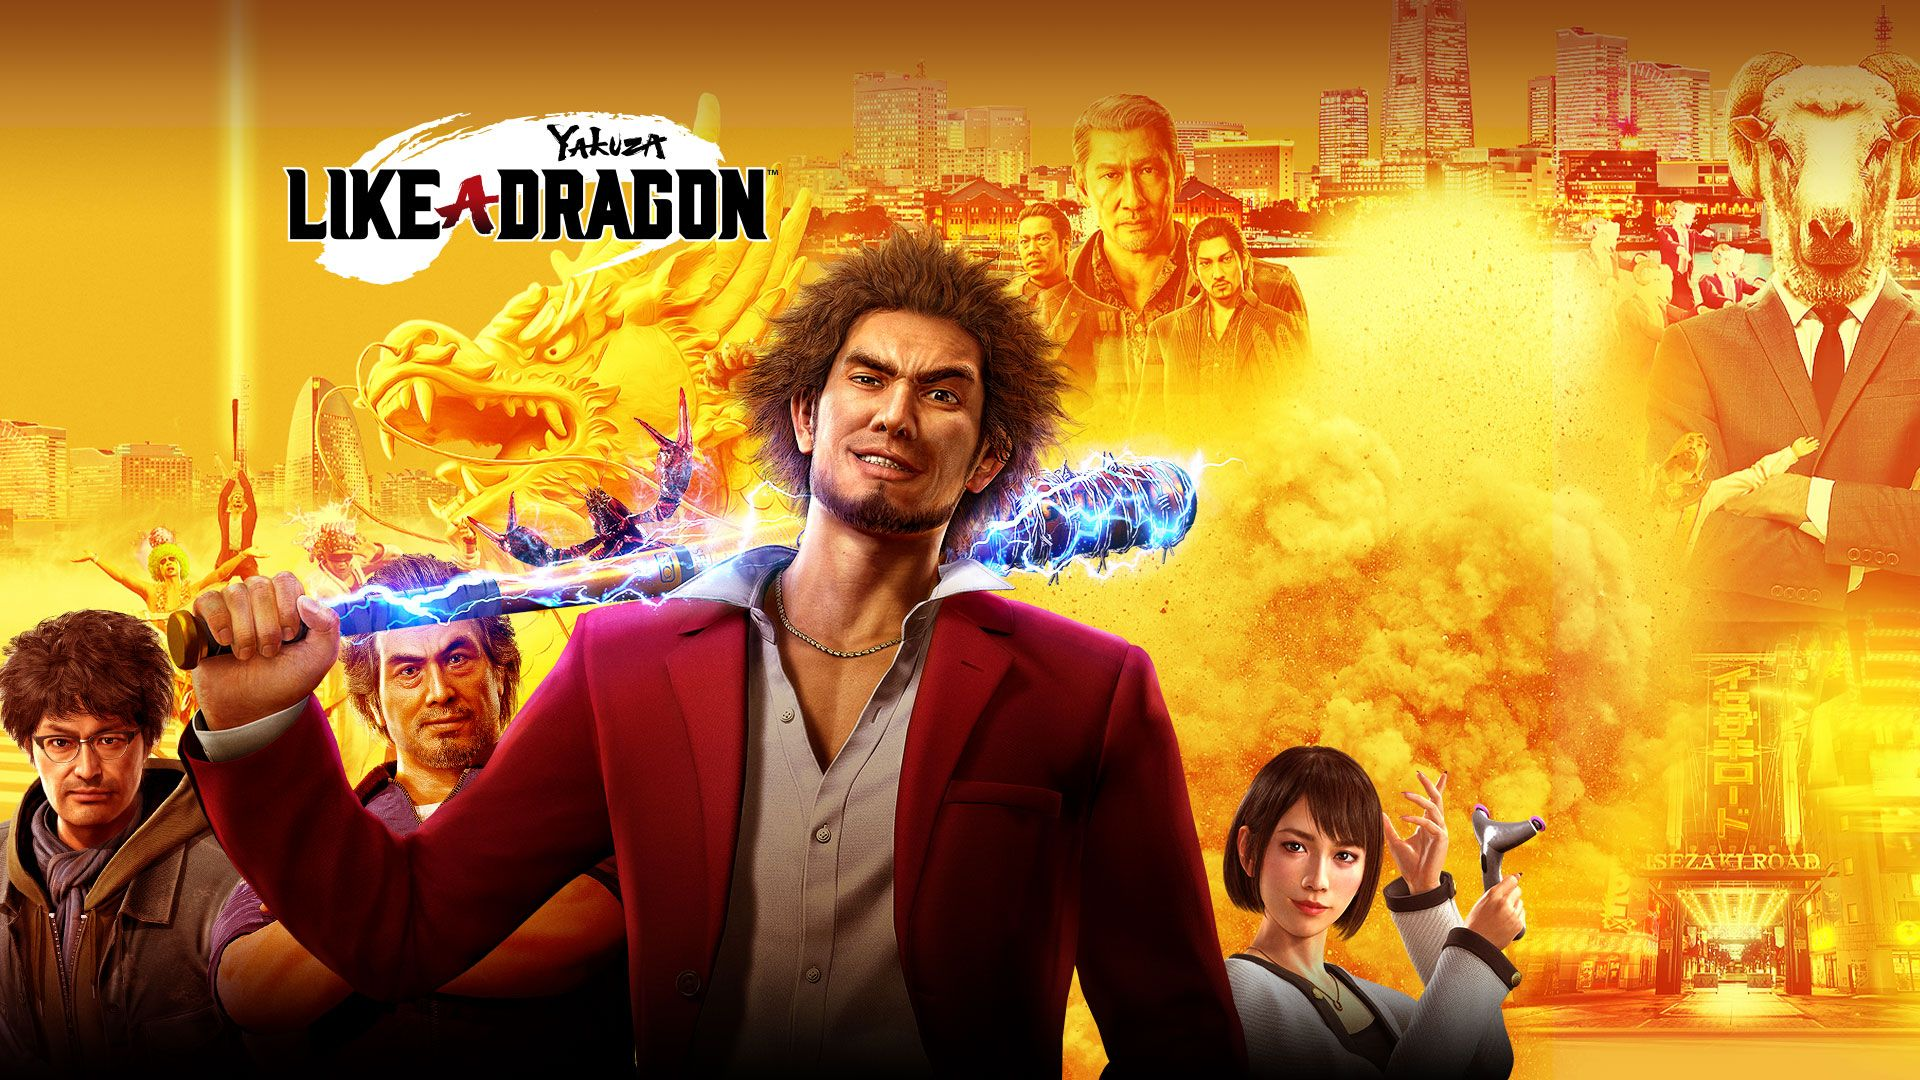 yakuza like a dragon wallpaper 74253